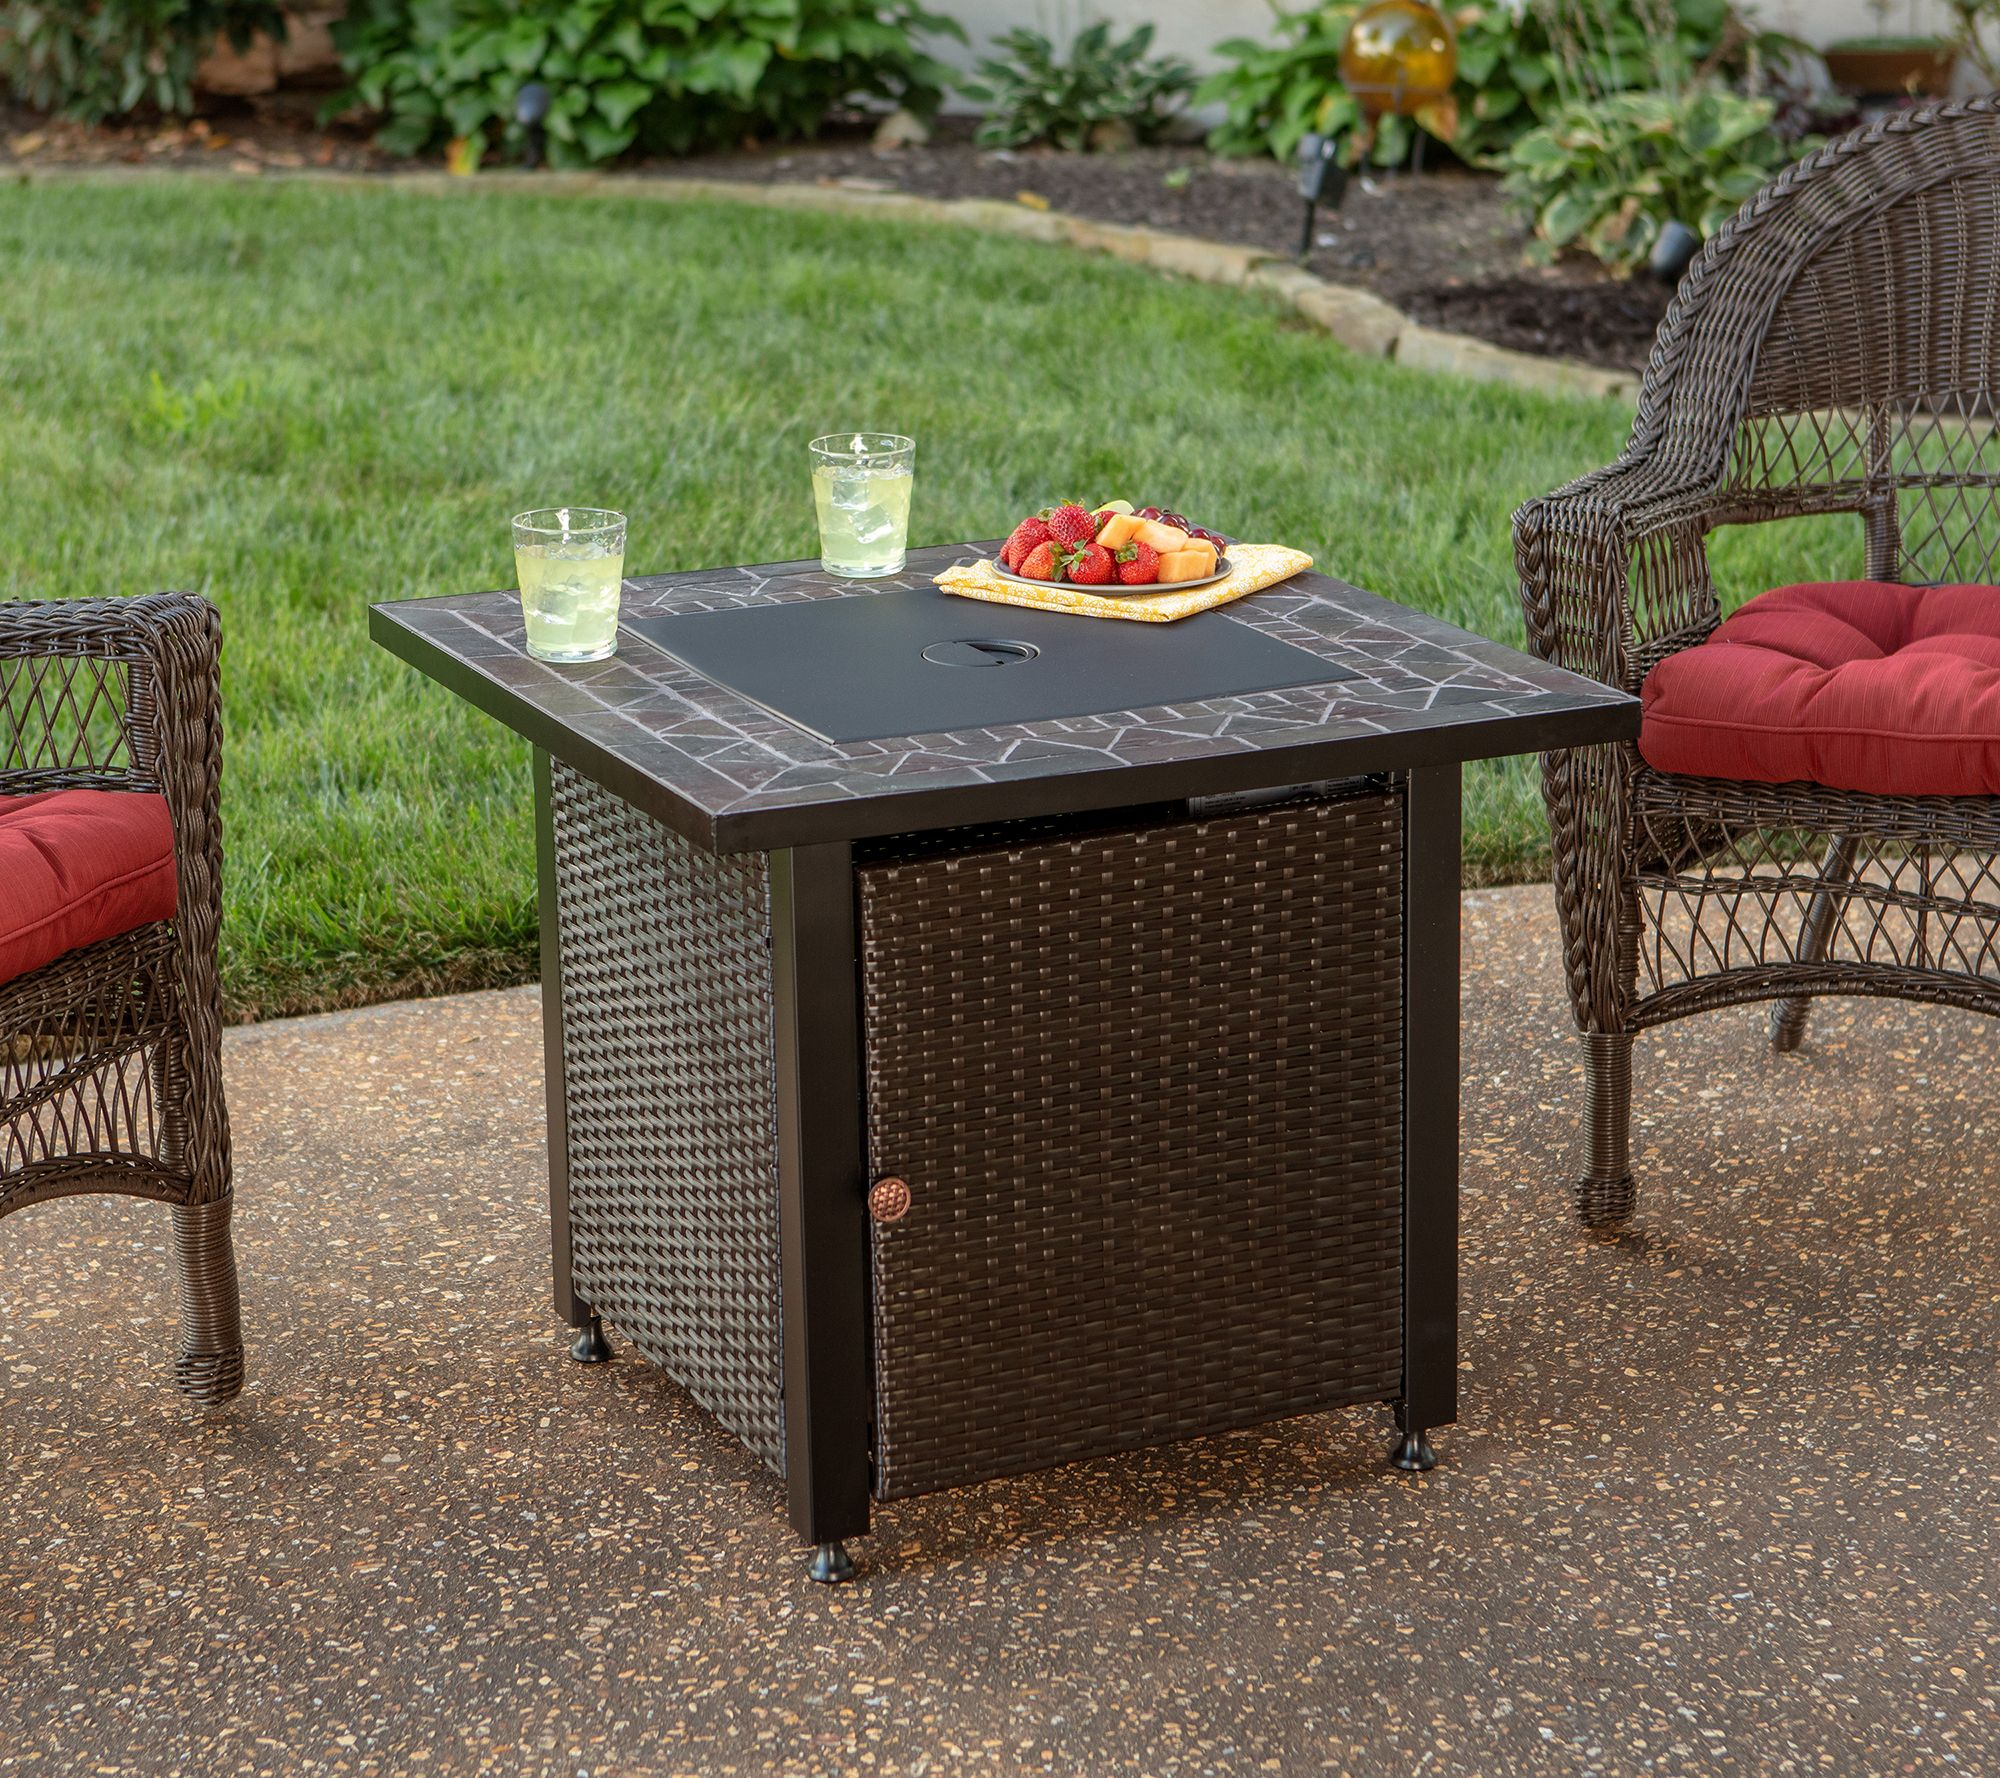 Blue Rhino Lp Propane Steel Fire Pit Table Qvc Com